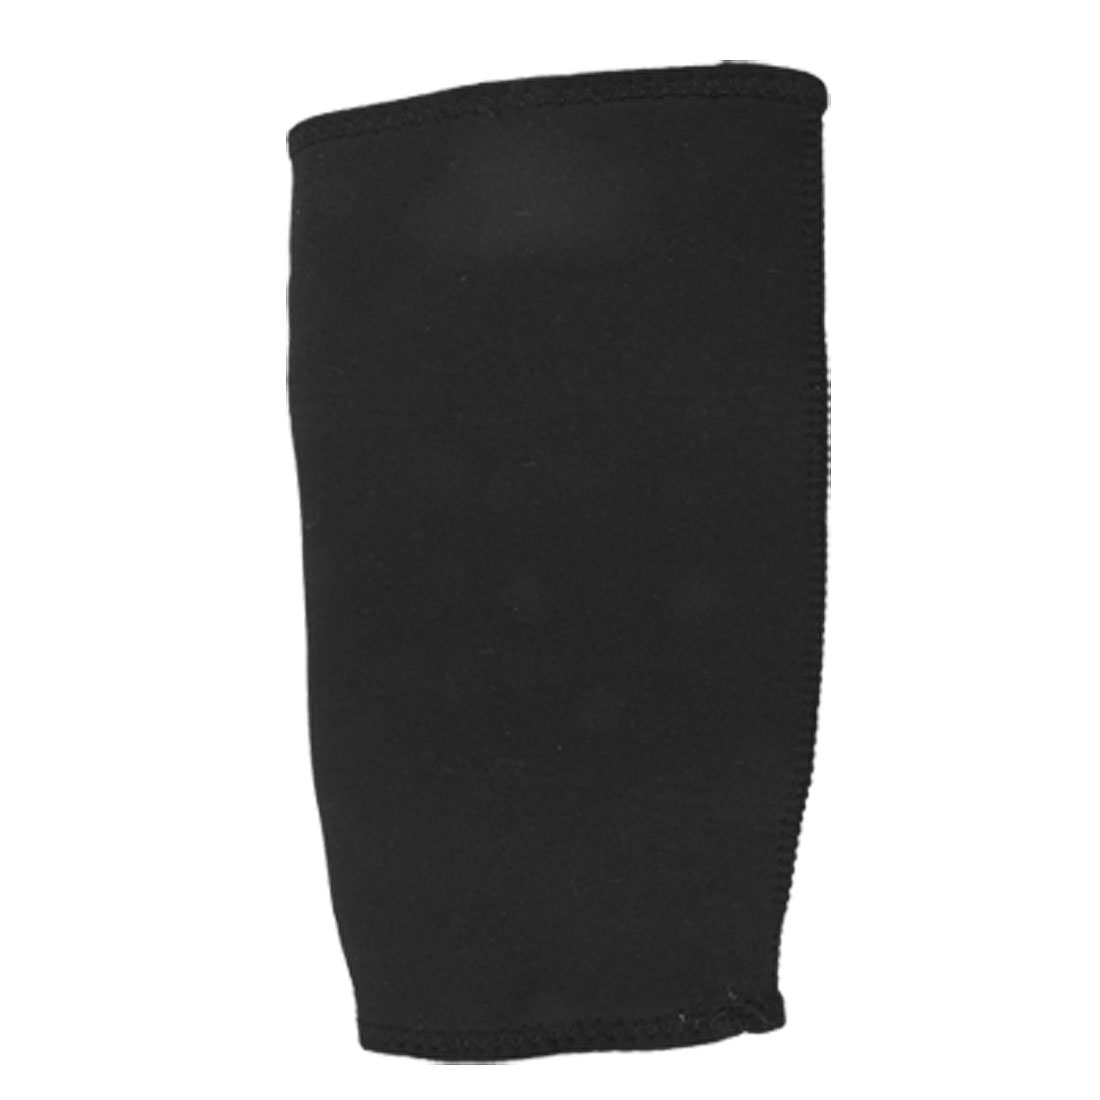 Size M Black Elastic Neoprene Sports Crus Calf Support Protector